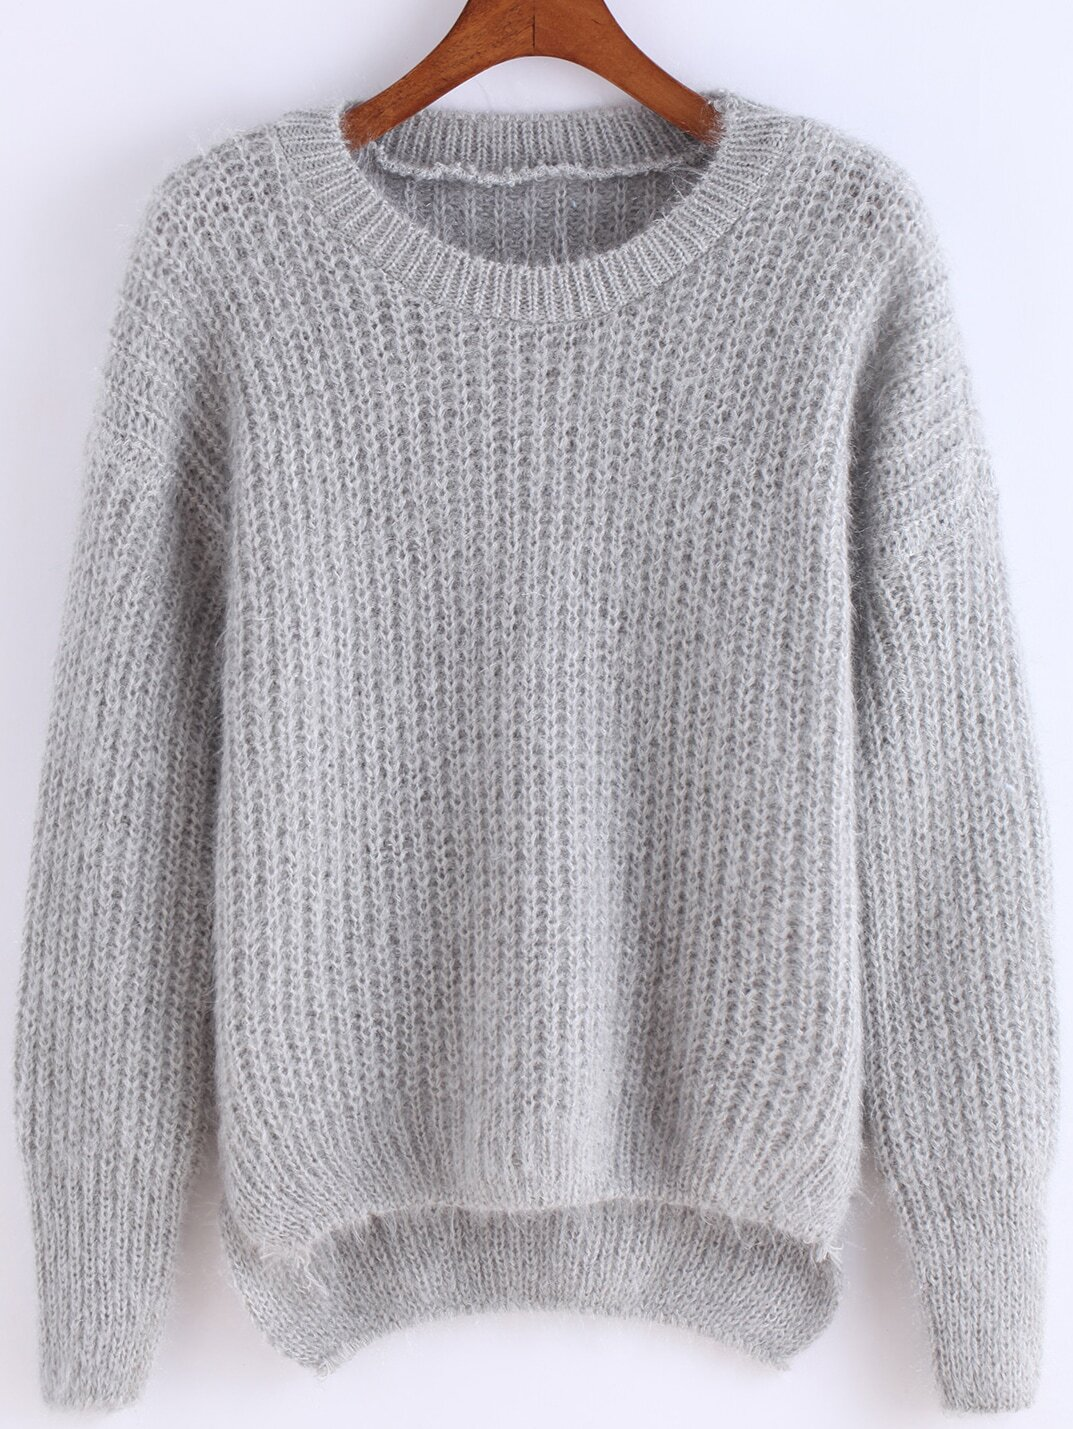 GREY SWEATER - GOOGLE SEARCH on The Hunt